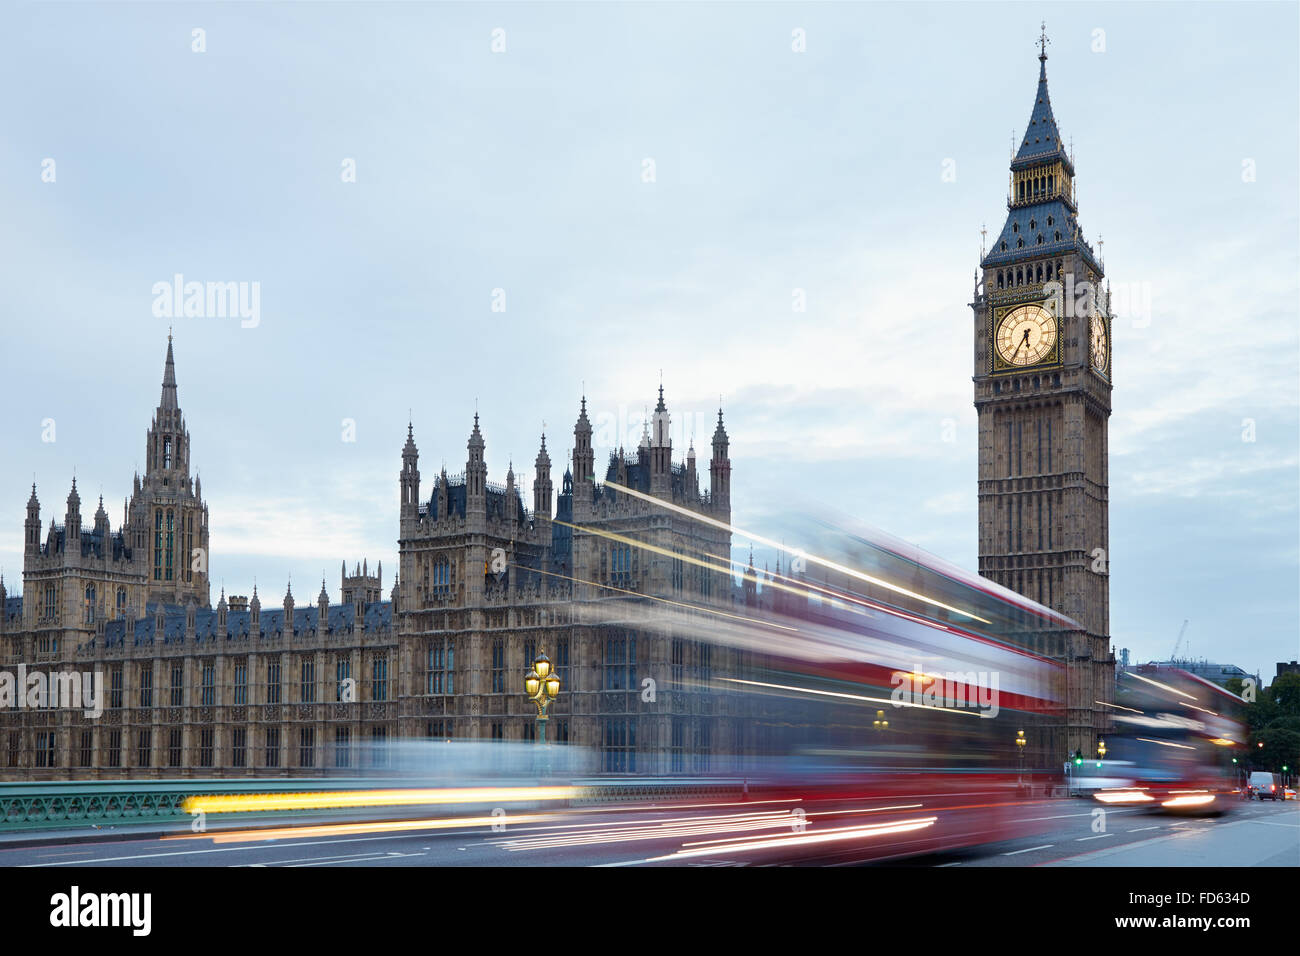 Big Ben and Palace of Westminster in the early morning, red buses passing in London, natural colors and lights - Stock Image